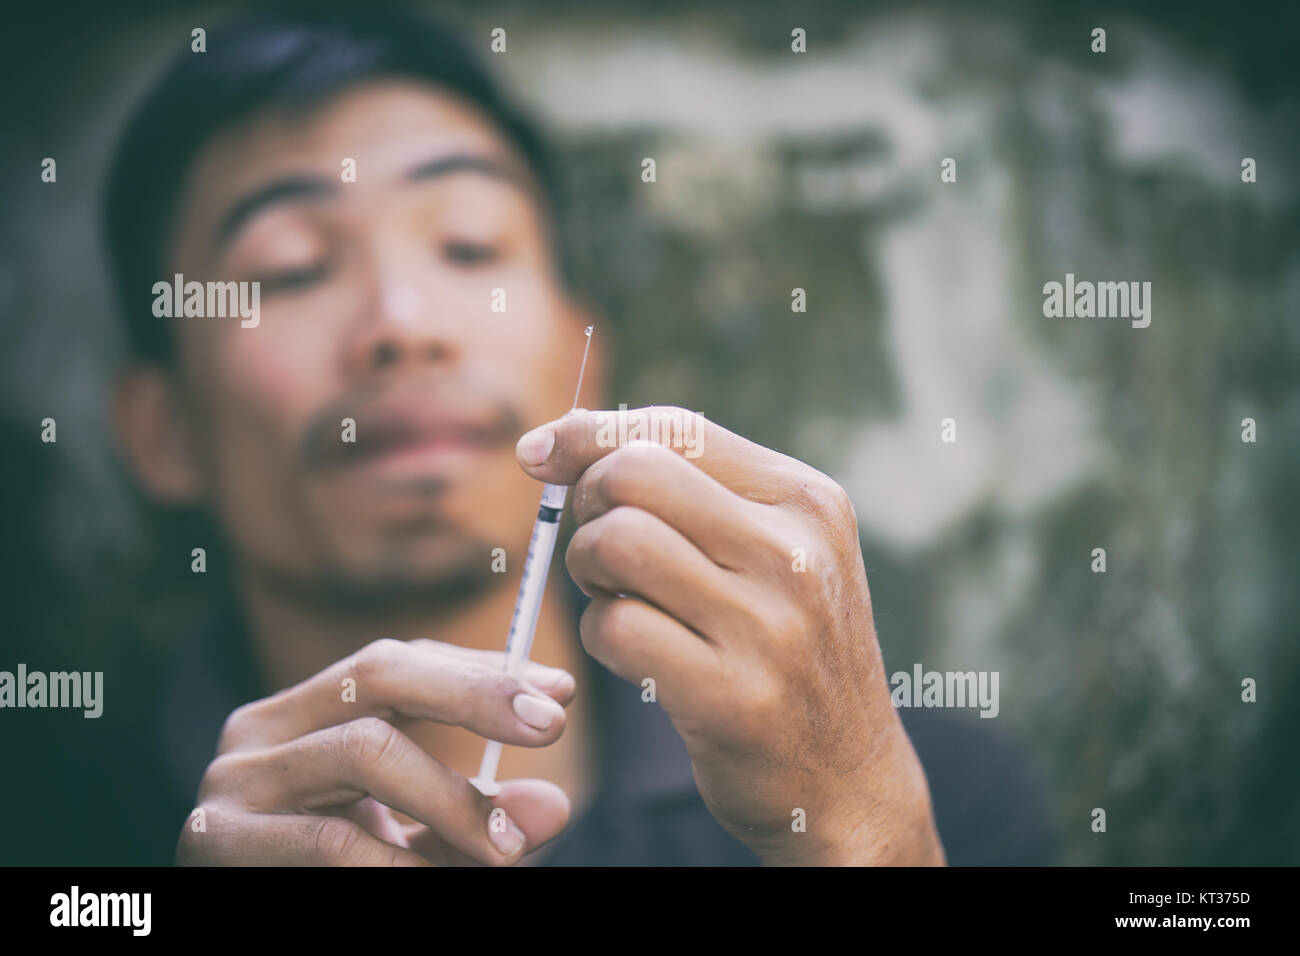 drug addict man - Stock Image